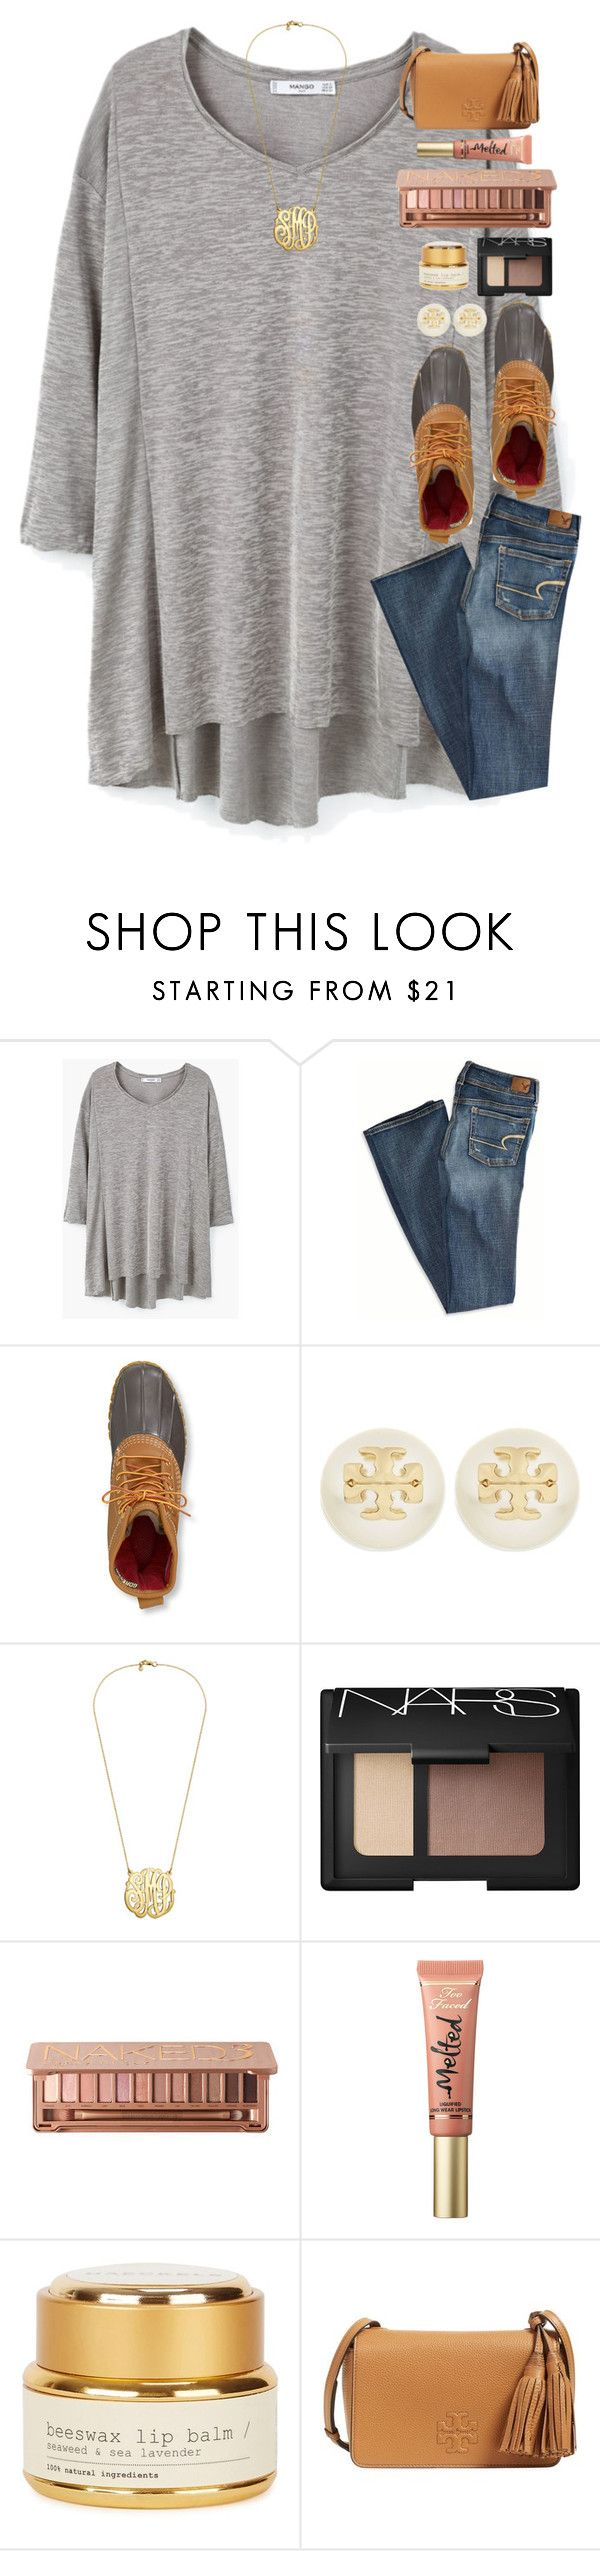 """""""Let's get lost in a world full of books, rainy days, and hot coca."""" by classyandsassyabby ❤ liked on Polyvore featuring MANGO, American Eagle Outfitters, L.L.Bean, Tory Burch, NARS Cosmetics, Urban Decay, Too Faced Cosmetics and Haeckels"""